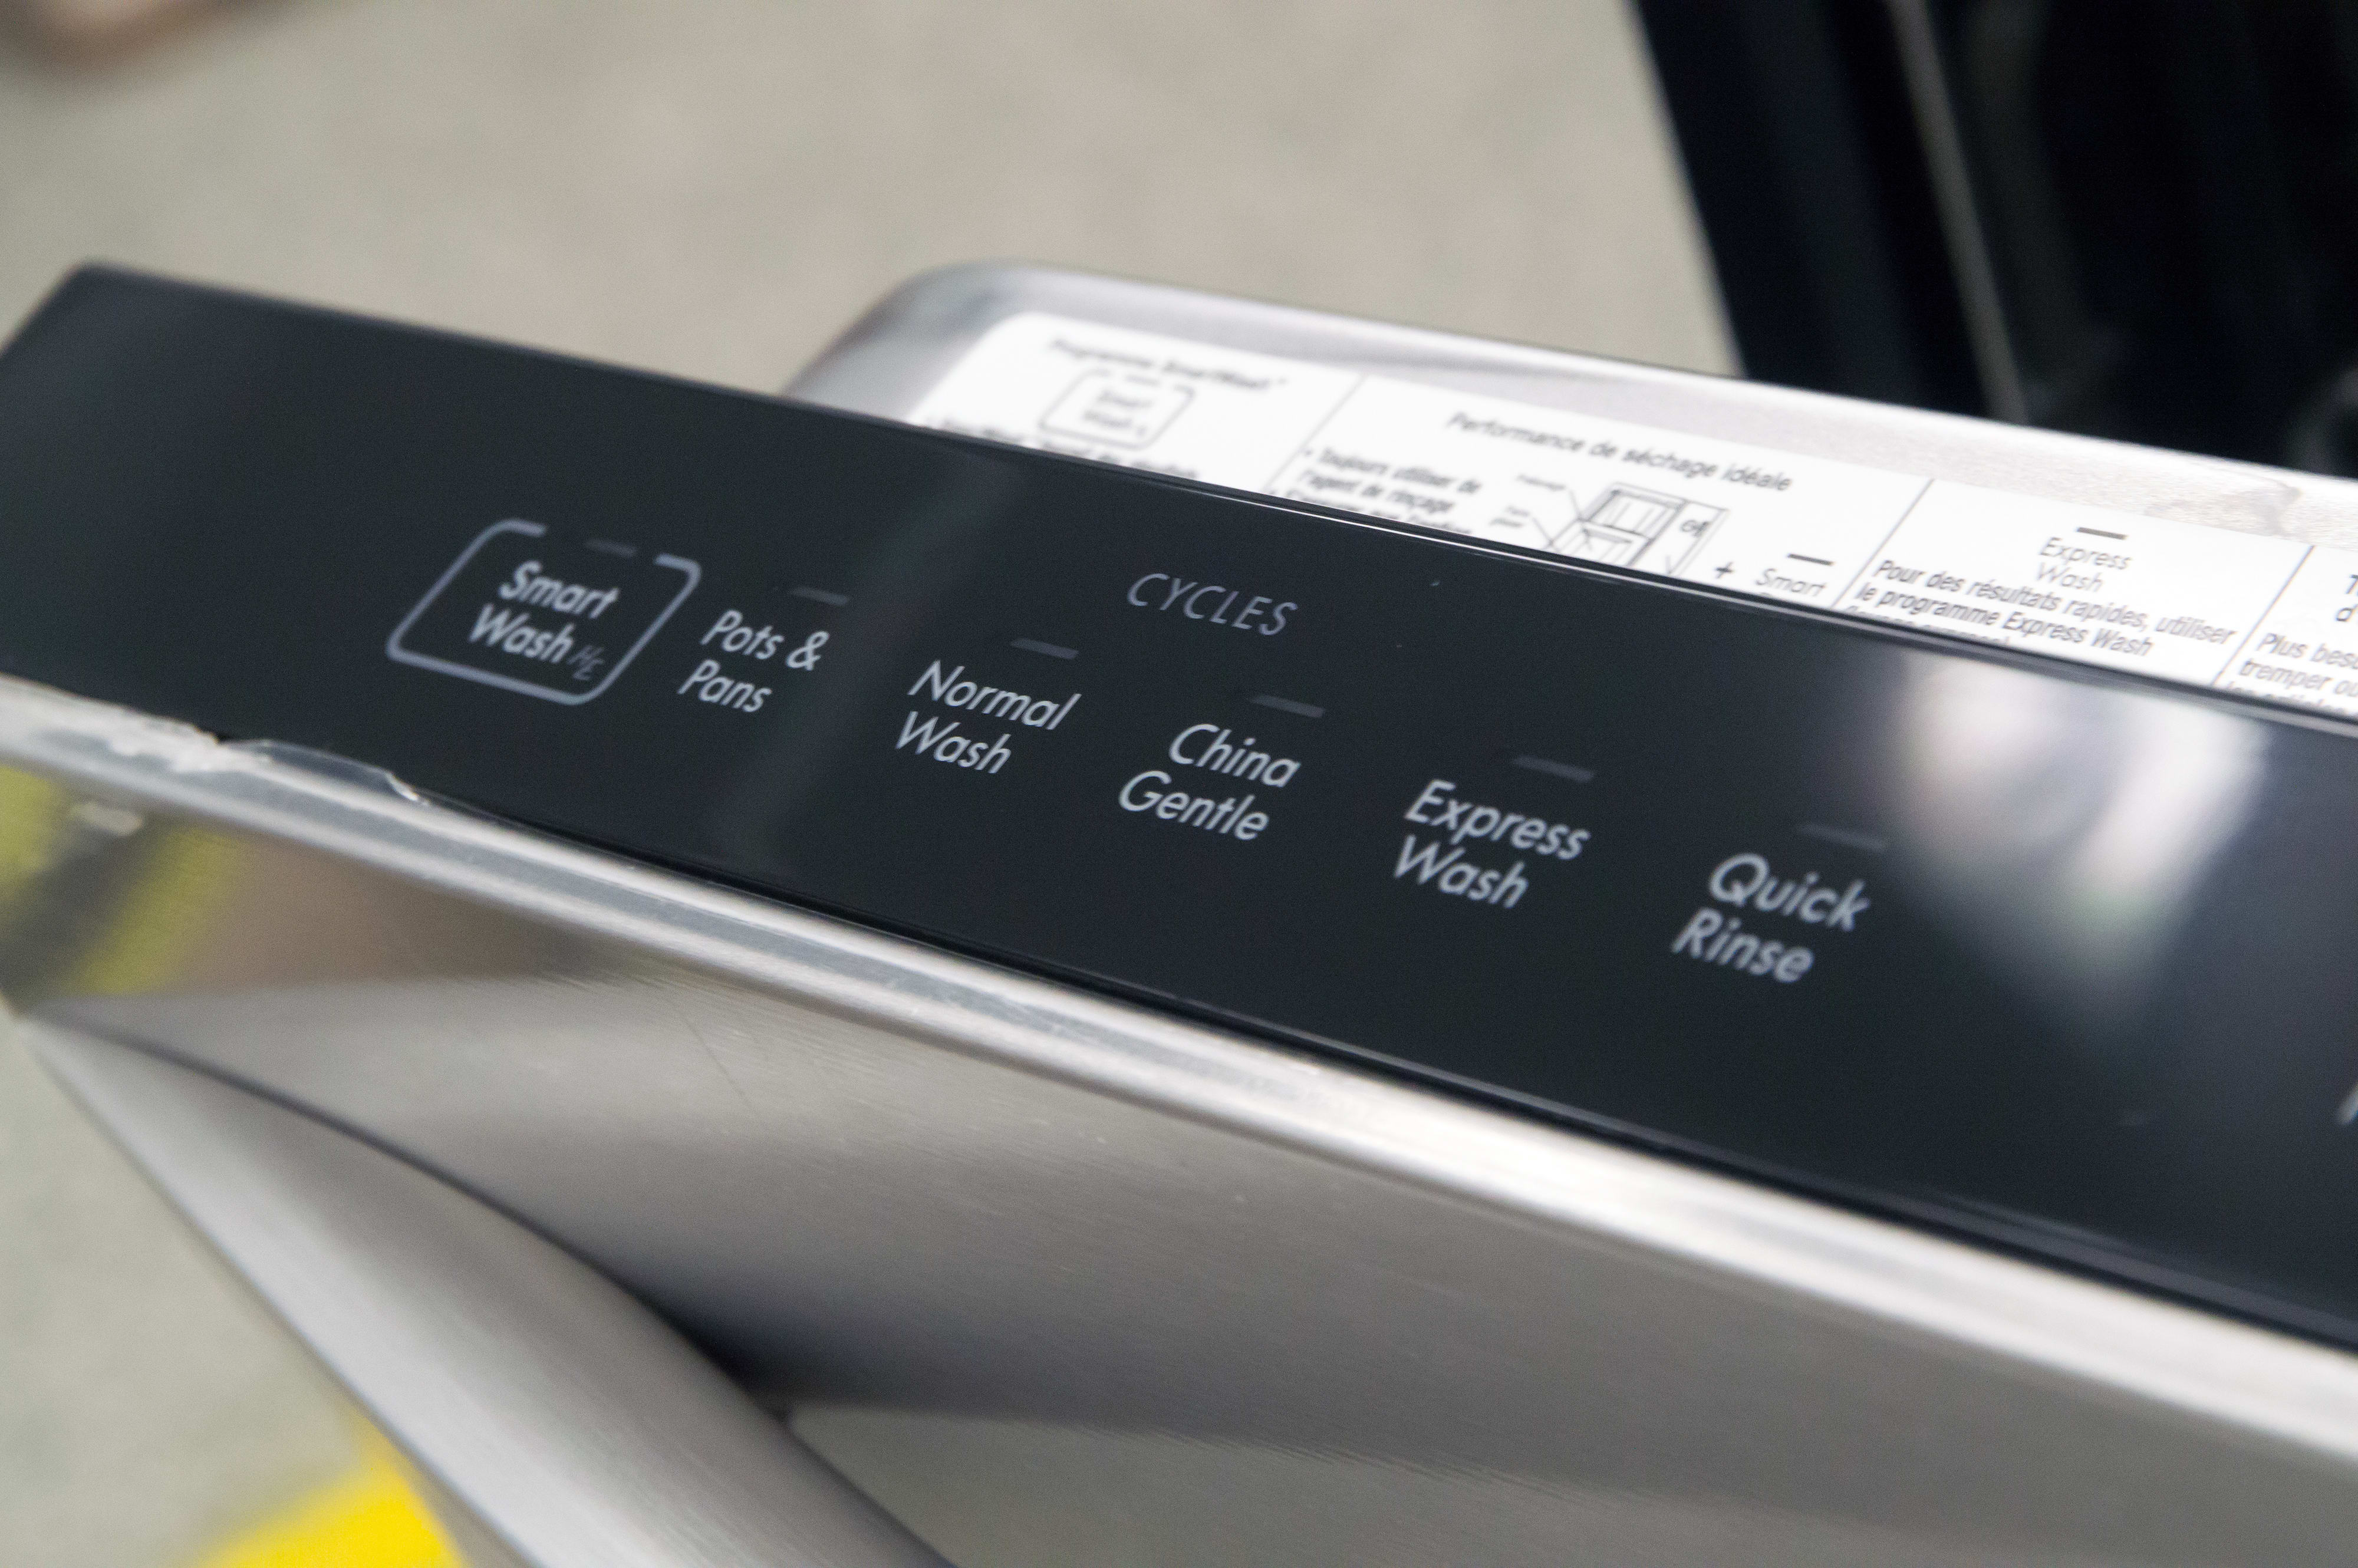 Left side of the control panel, for picking wash cycles